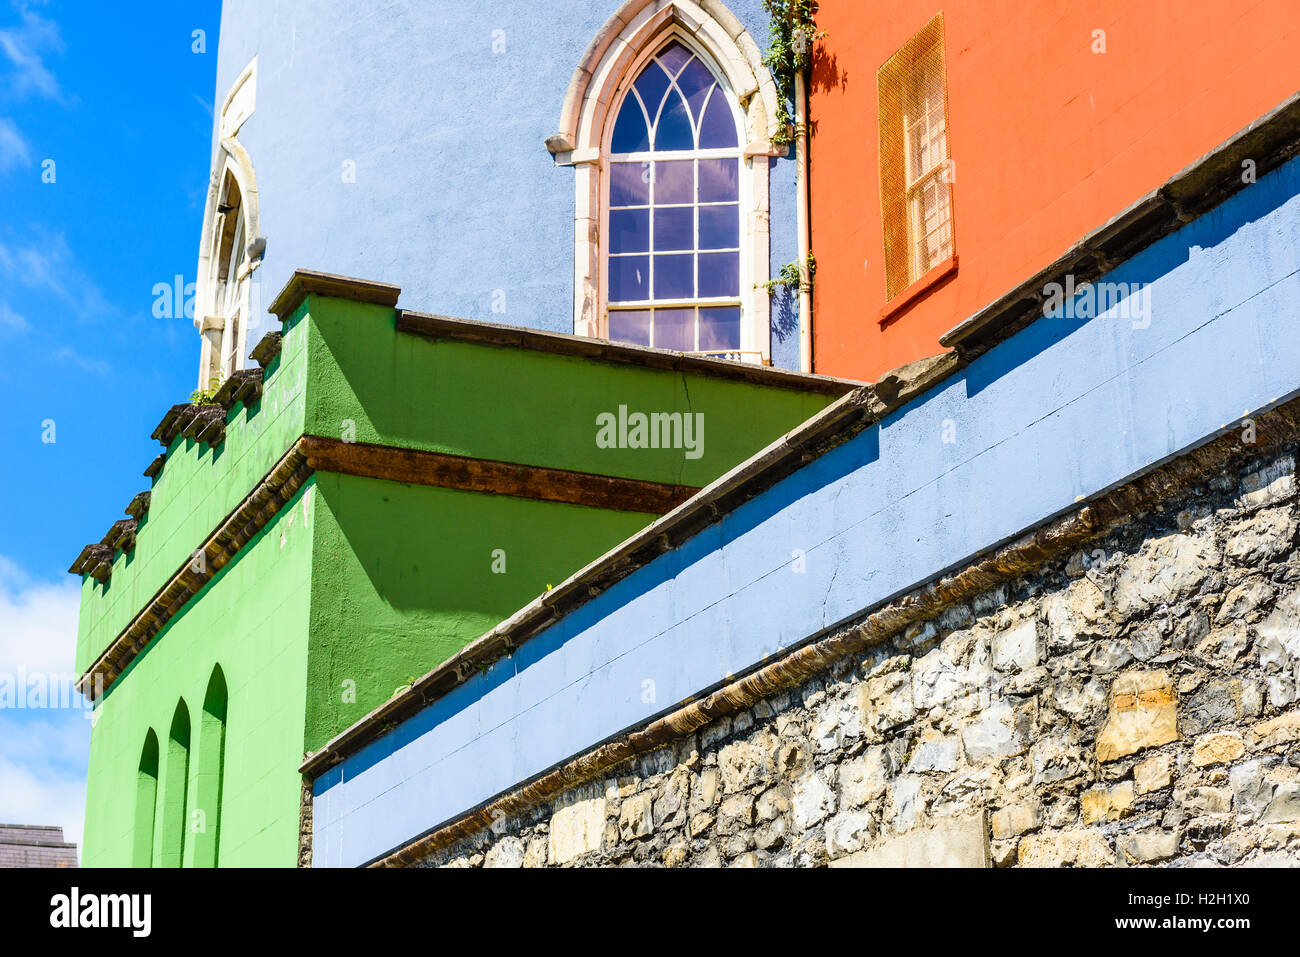 Colourful walls of the State Apartments at Dublin Castle, Ireland - Stock Image